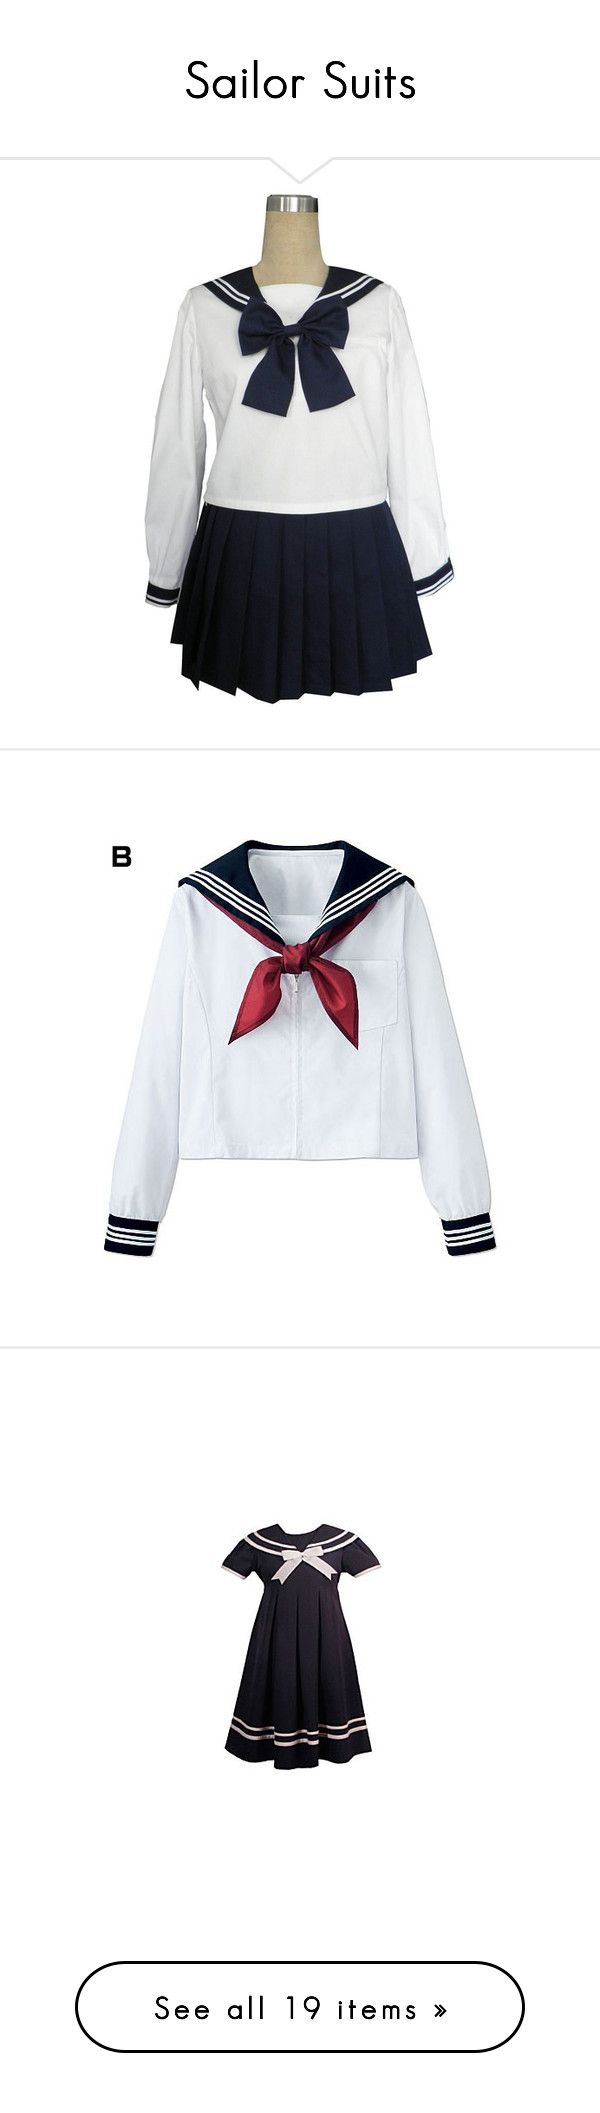 """""""Sailor Suits"""" by yandereotaku ❤ liked on Polyvore featuring costumes, dresses, lolita, uniforms, sailor, sailor halloween costumes, cosplay costumes, sailor costume, cosplay halloween costumes and adult costume"""